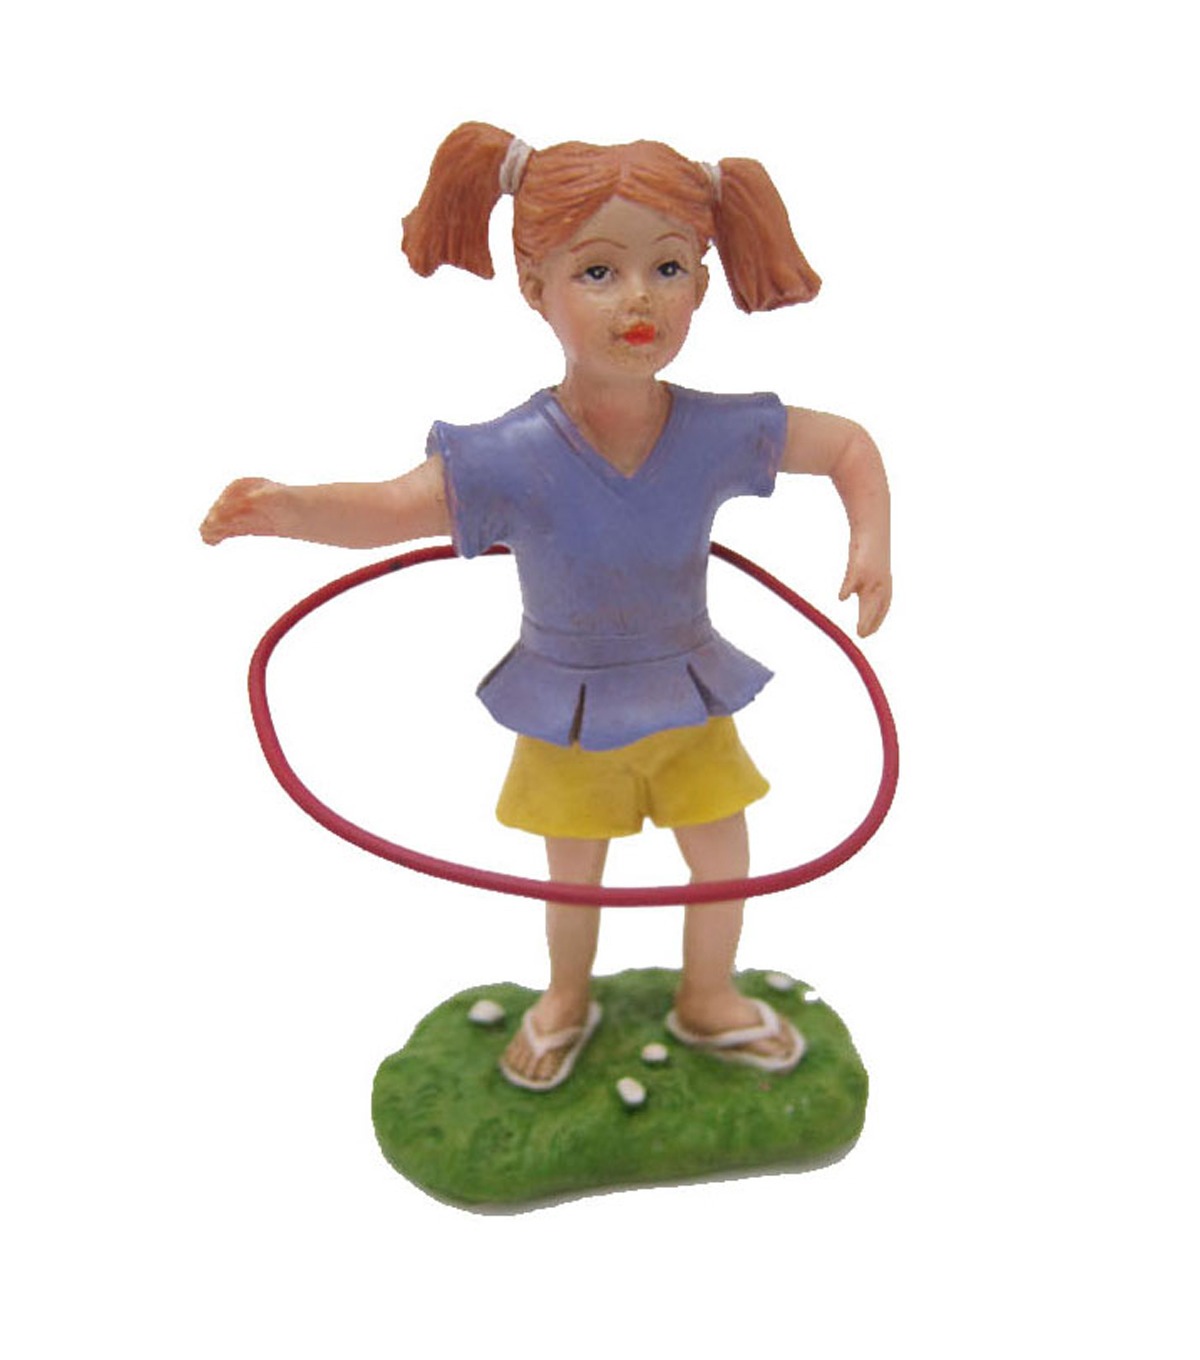 Bloom Room Littles Resin Girl with Hula Hoop